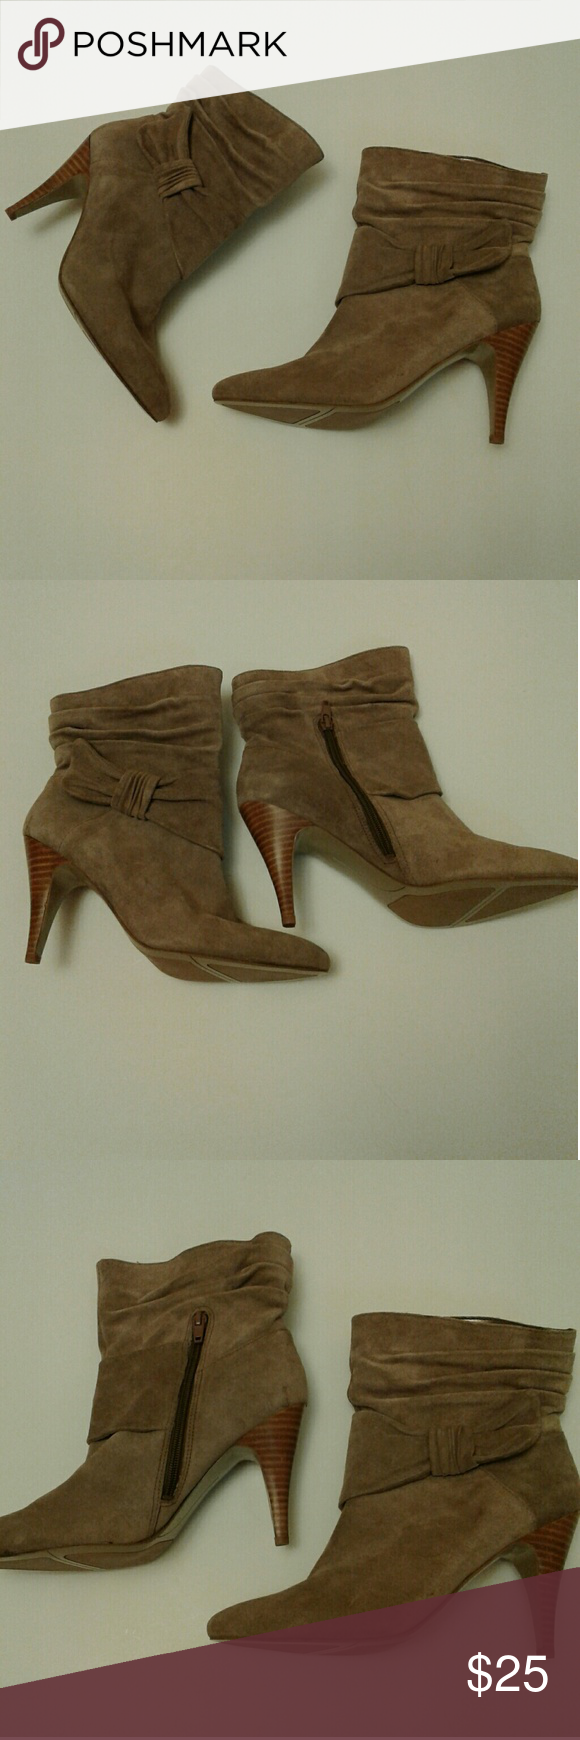 """Boots by Nine West Beautiful Boots By Nine West  Size 8M Zipper Up Side 4"""" Heel NWOT Nine West Shoes Heeled Boots"""